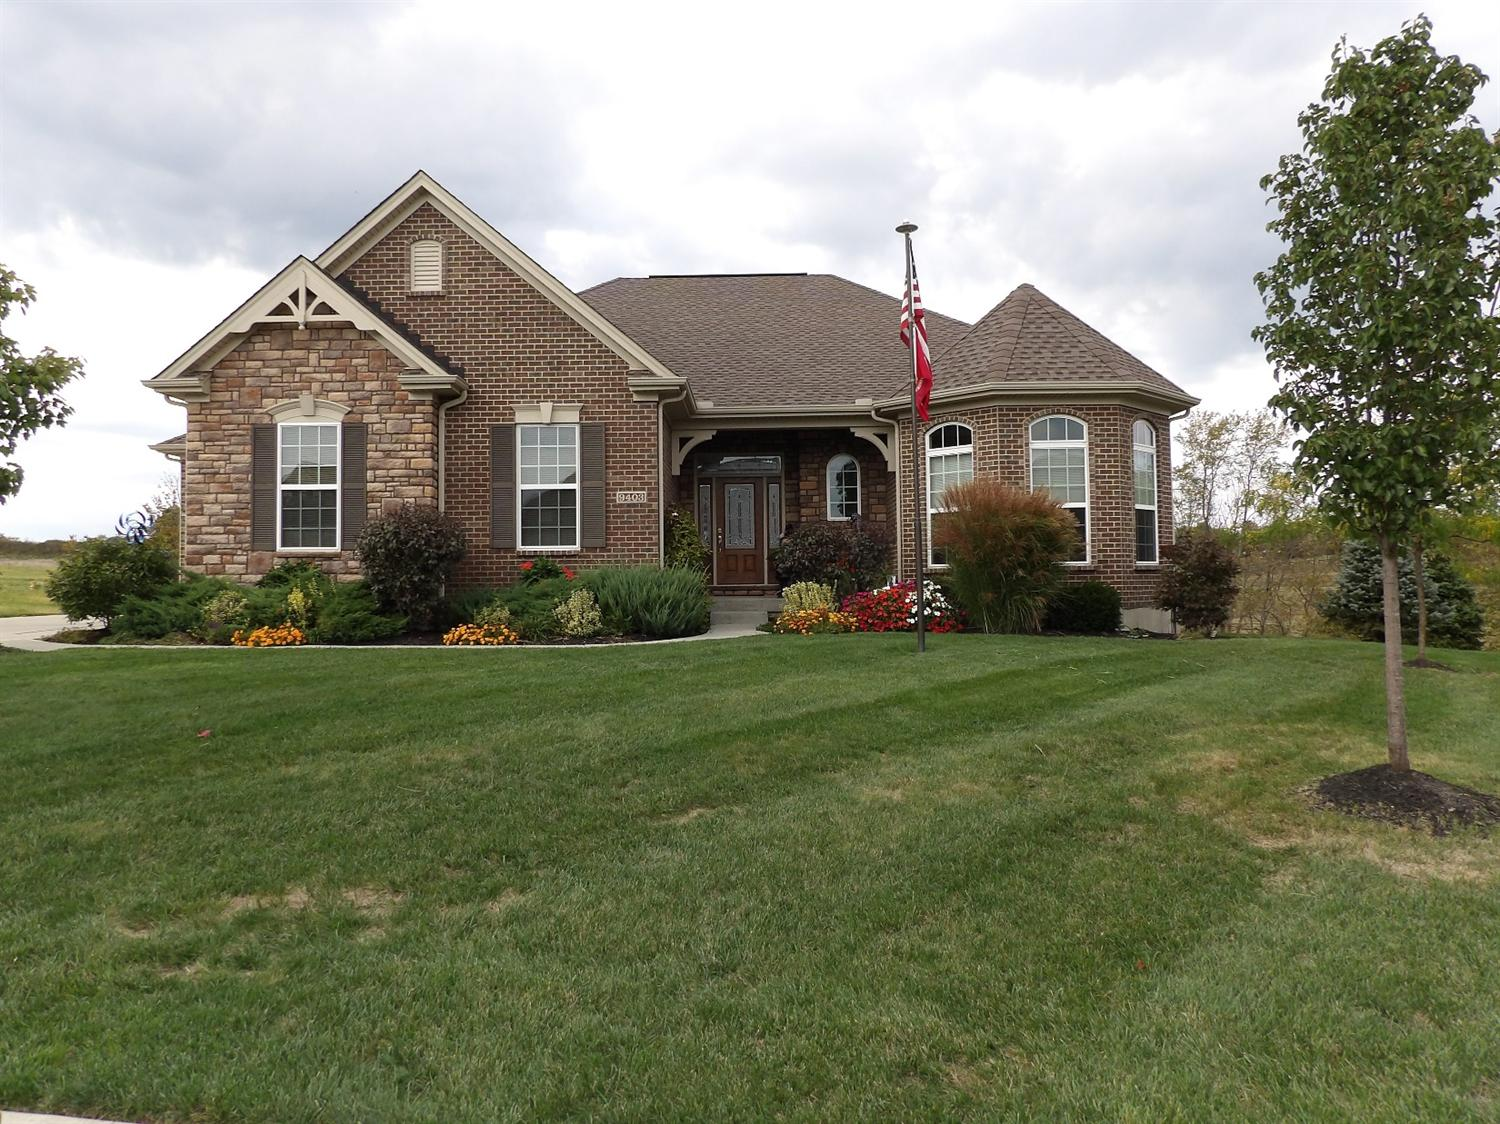 Photo 1 for 9403 Riviera Dr Union, KY 41091